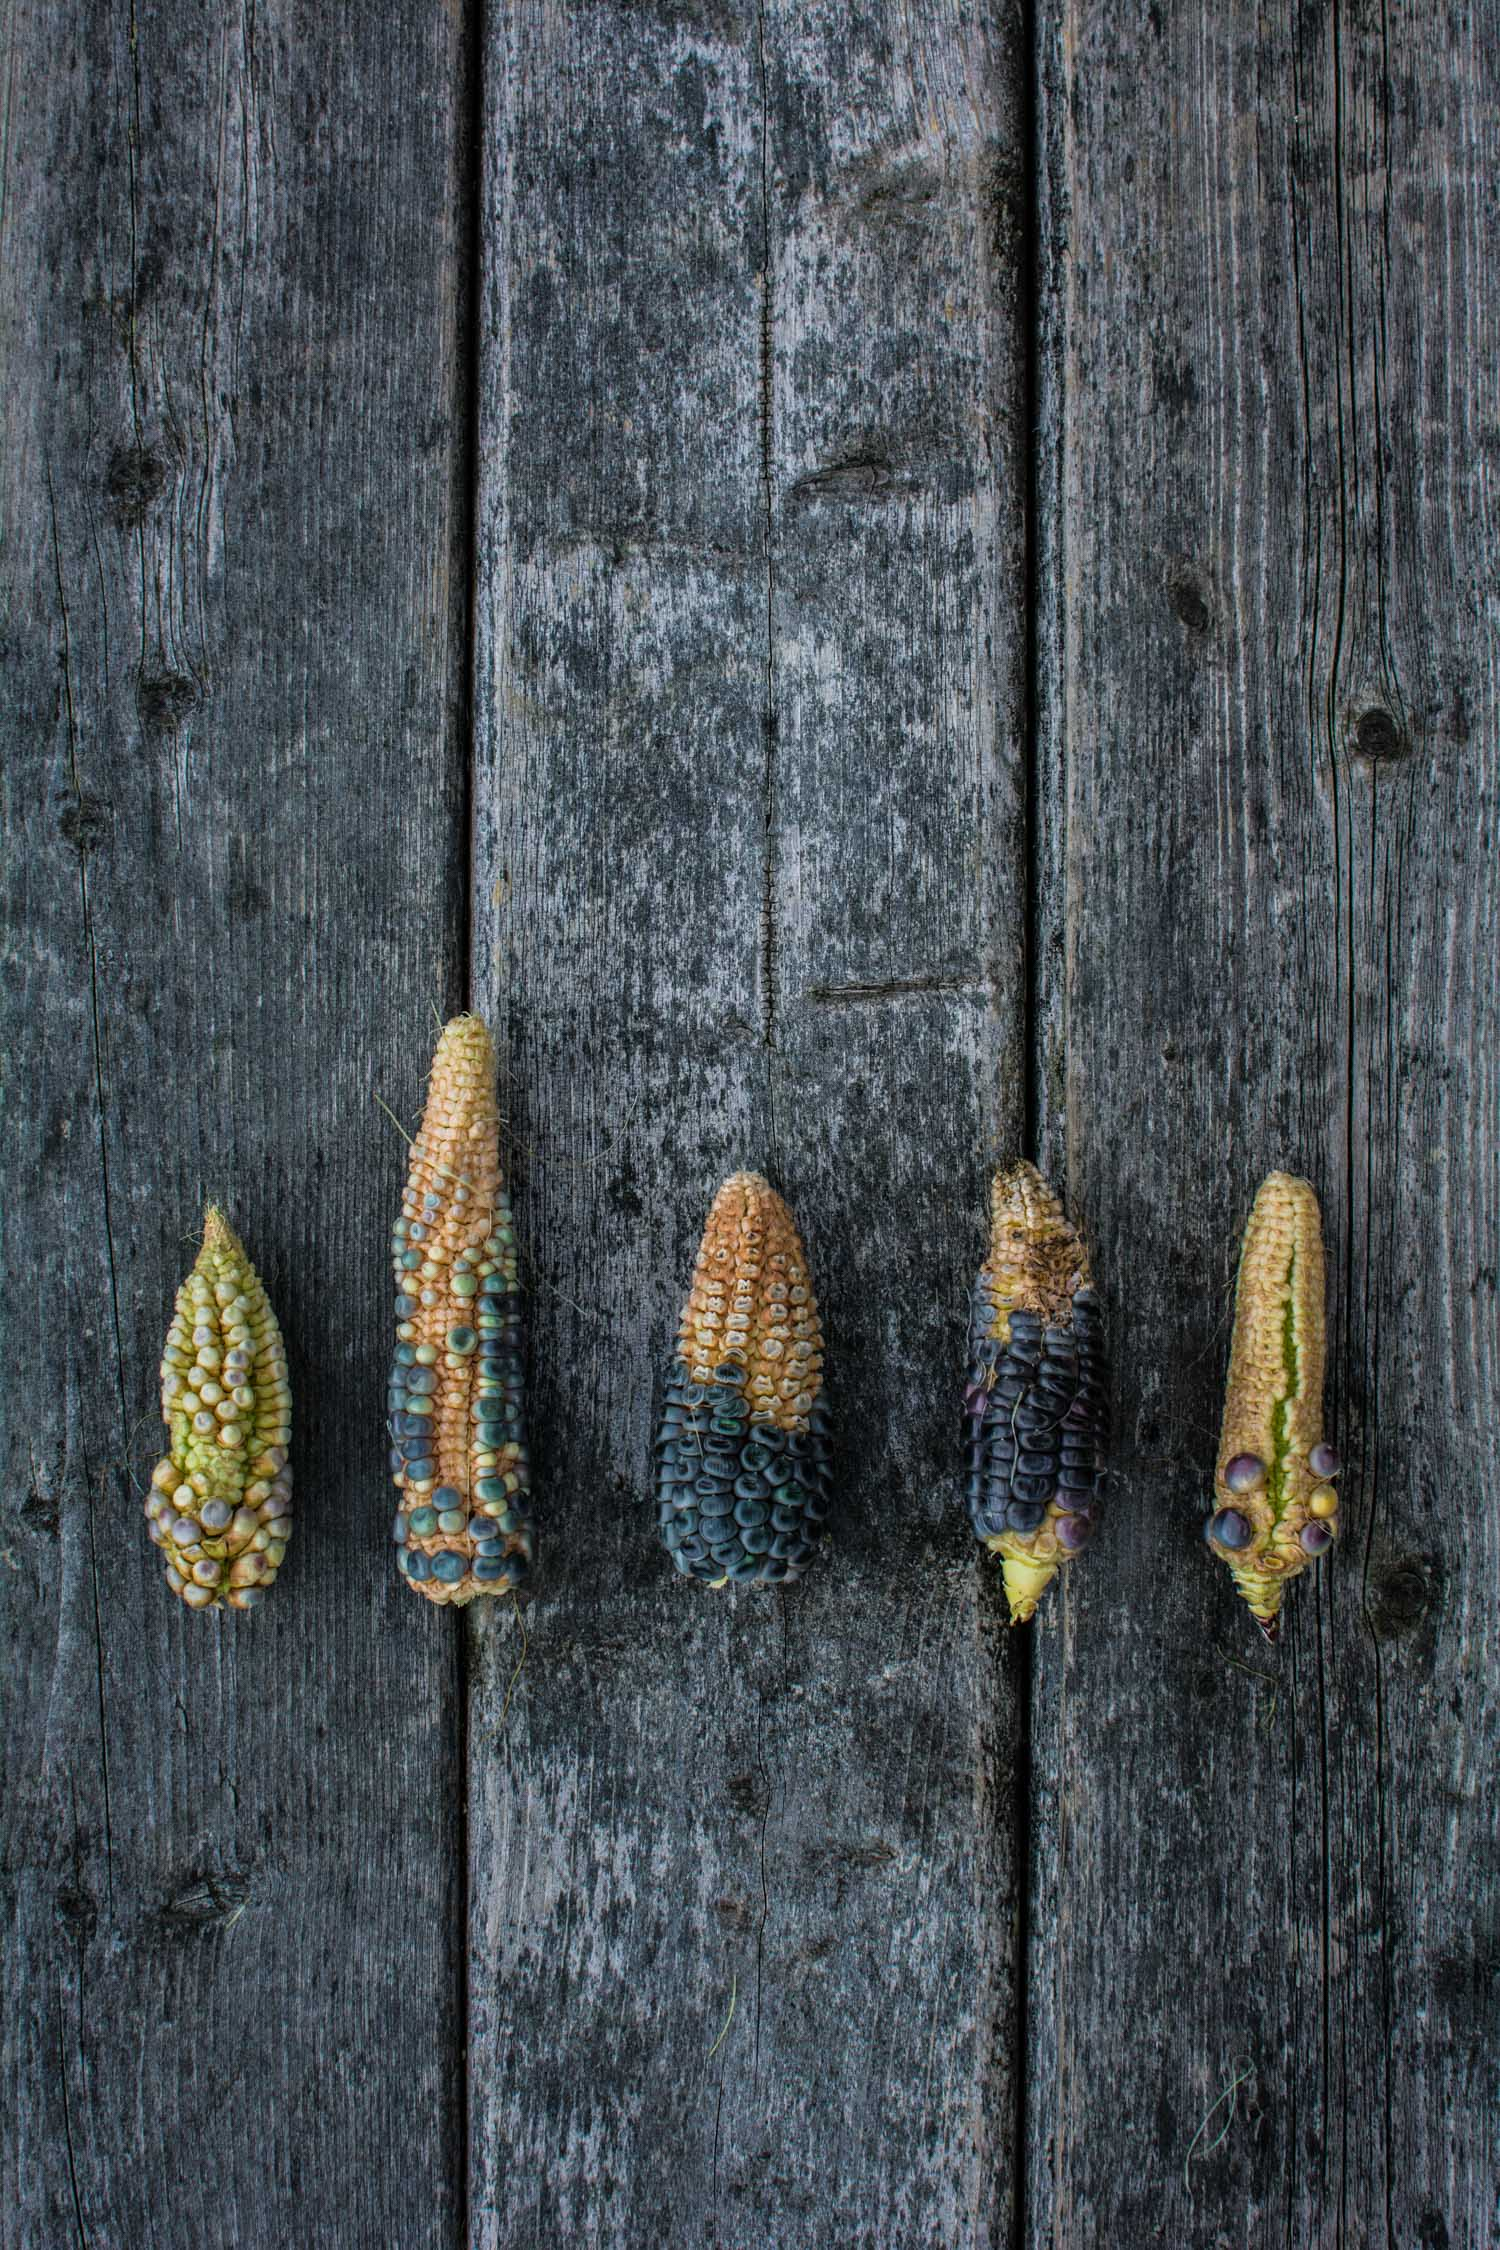 Black, Blue and Yellow Corn